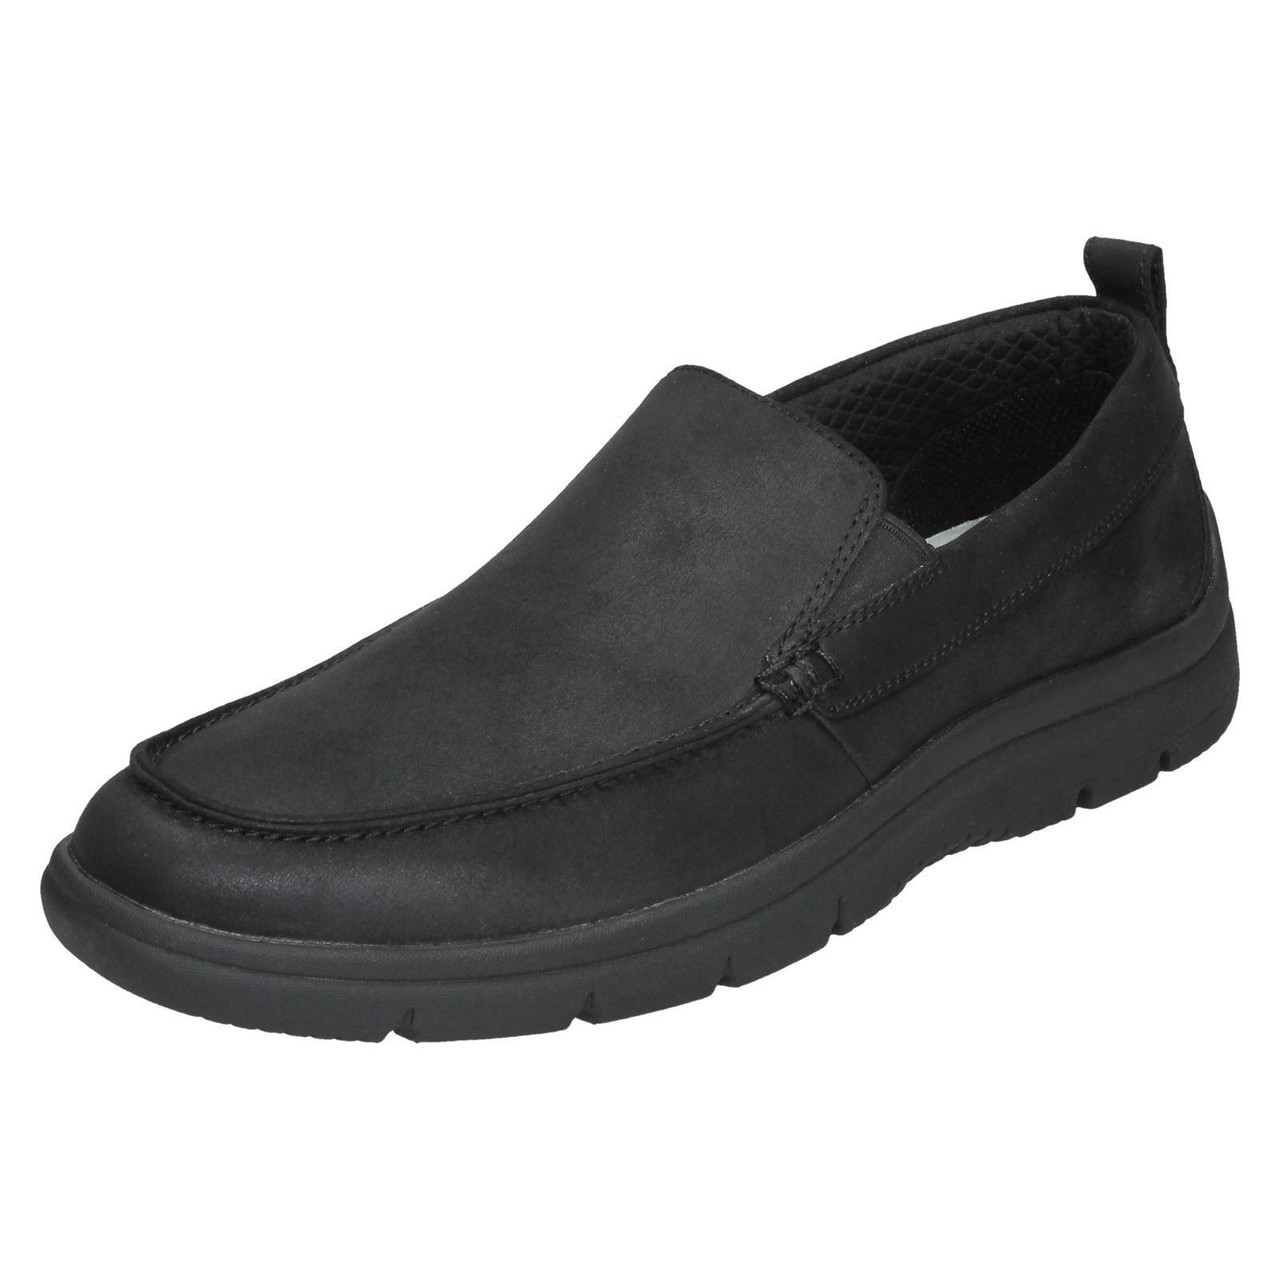 Mens Cloudsteppers By Clarks Slip On